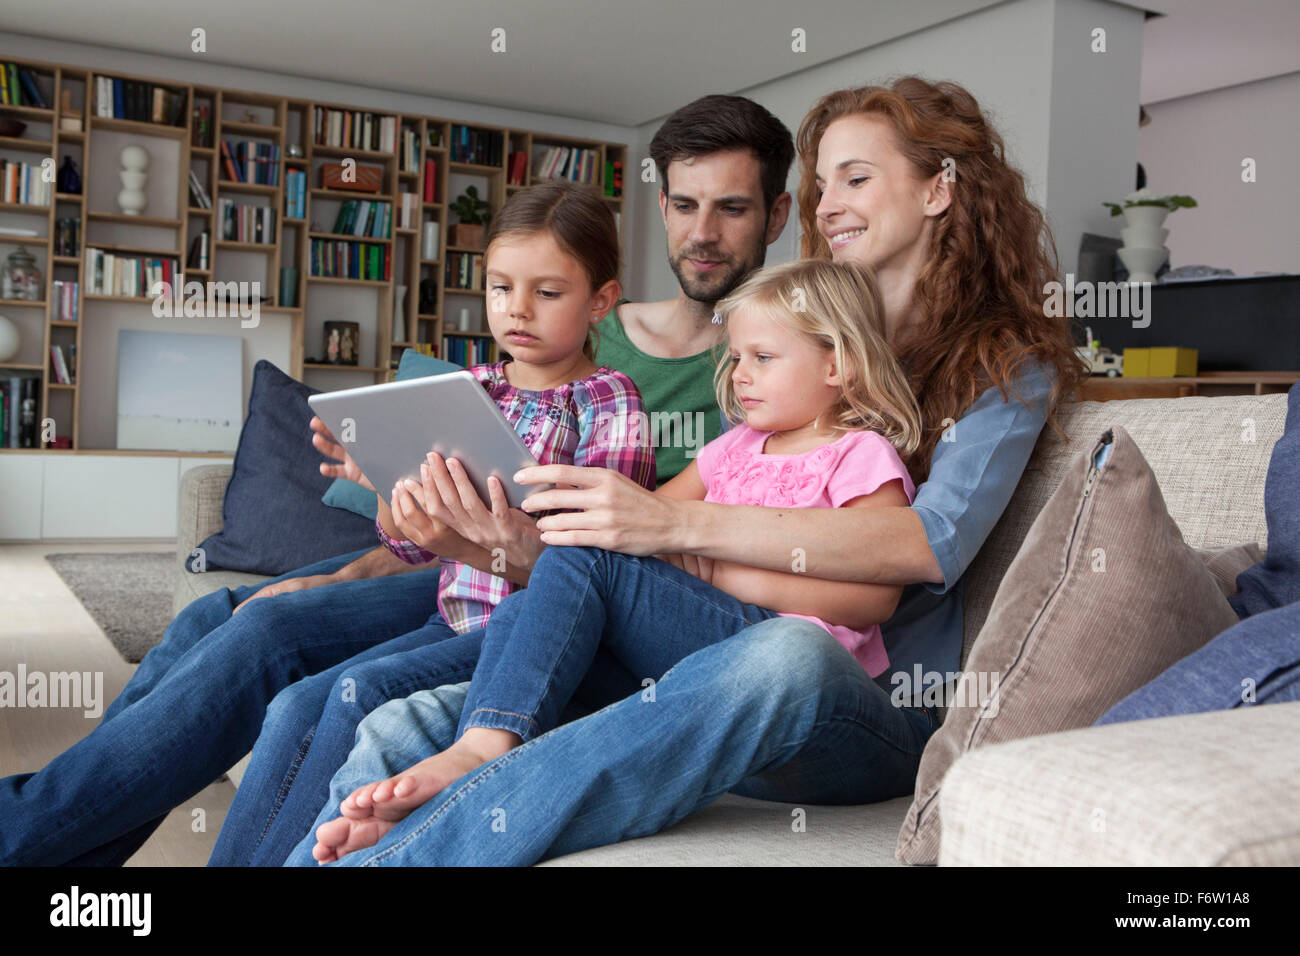 Couple sitting with their with two little daughters on couch in the living room looking at digital tablet - Stock Image